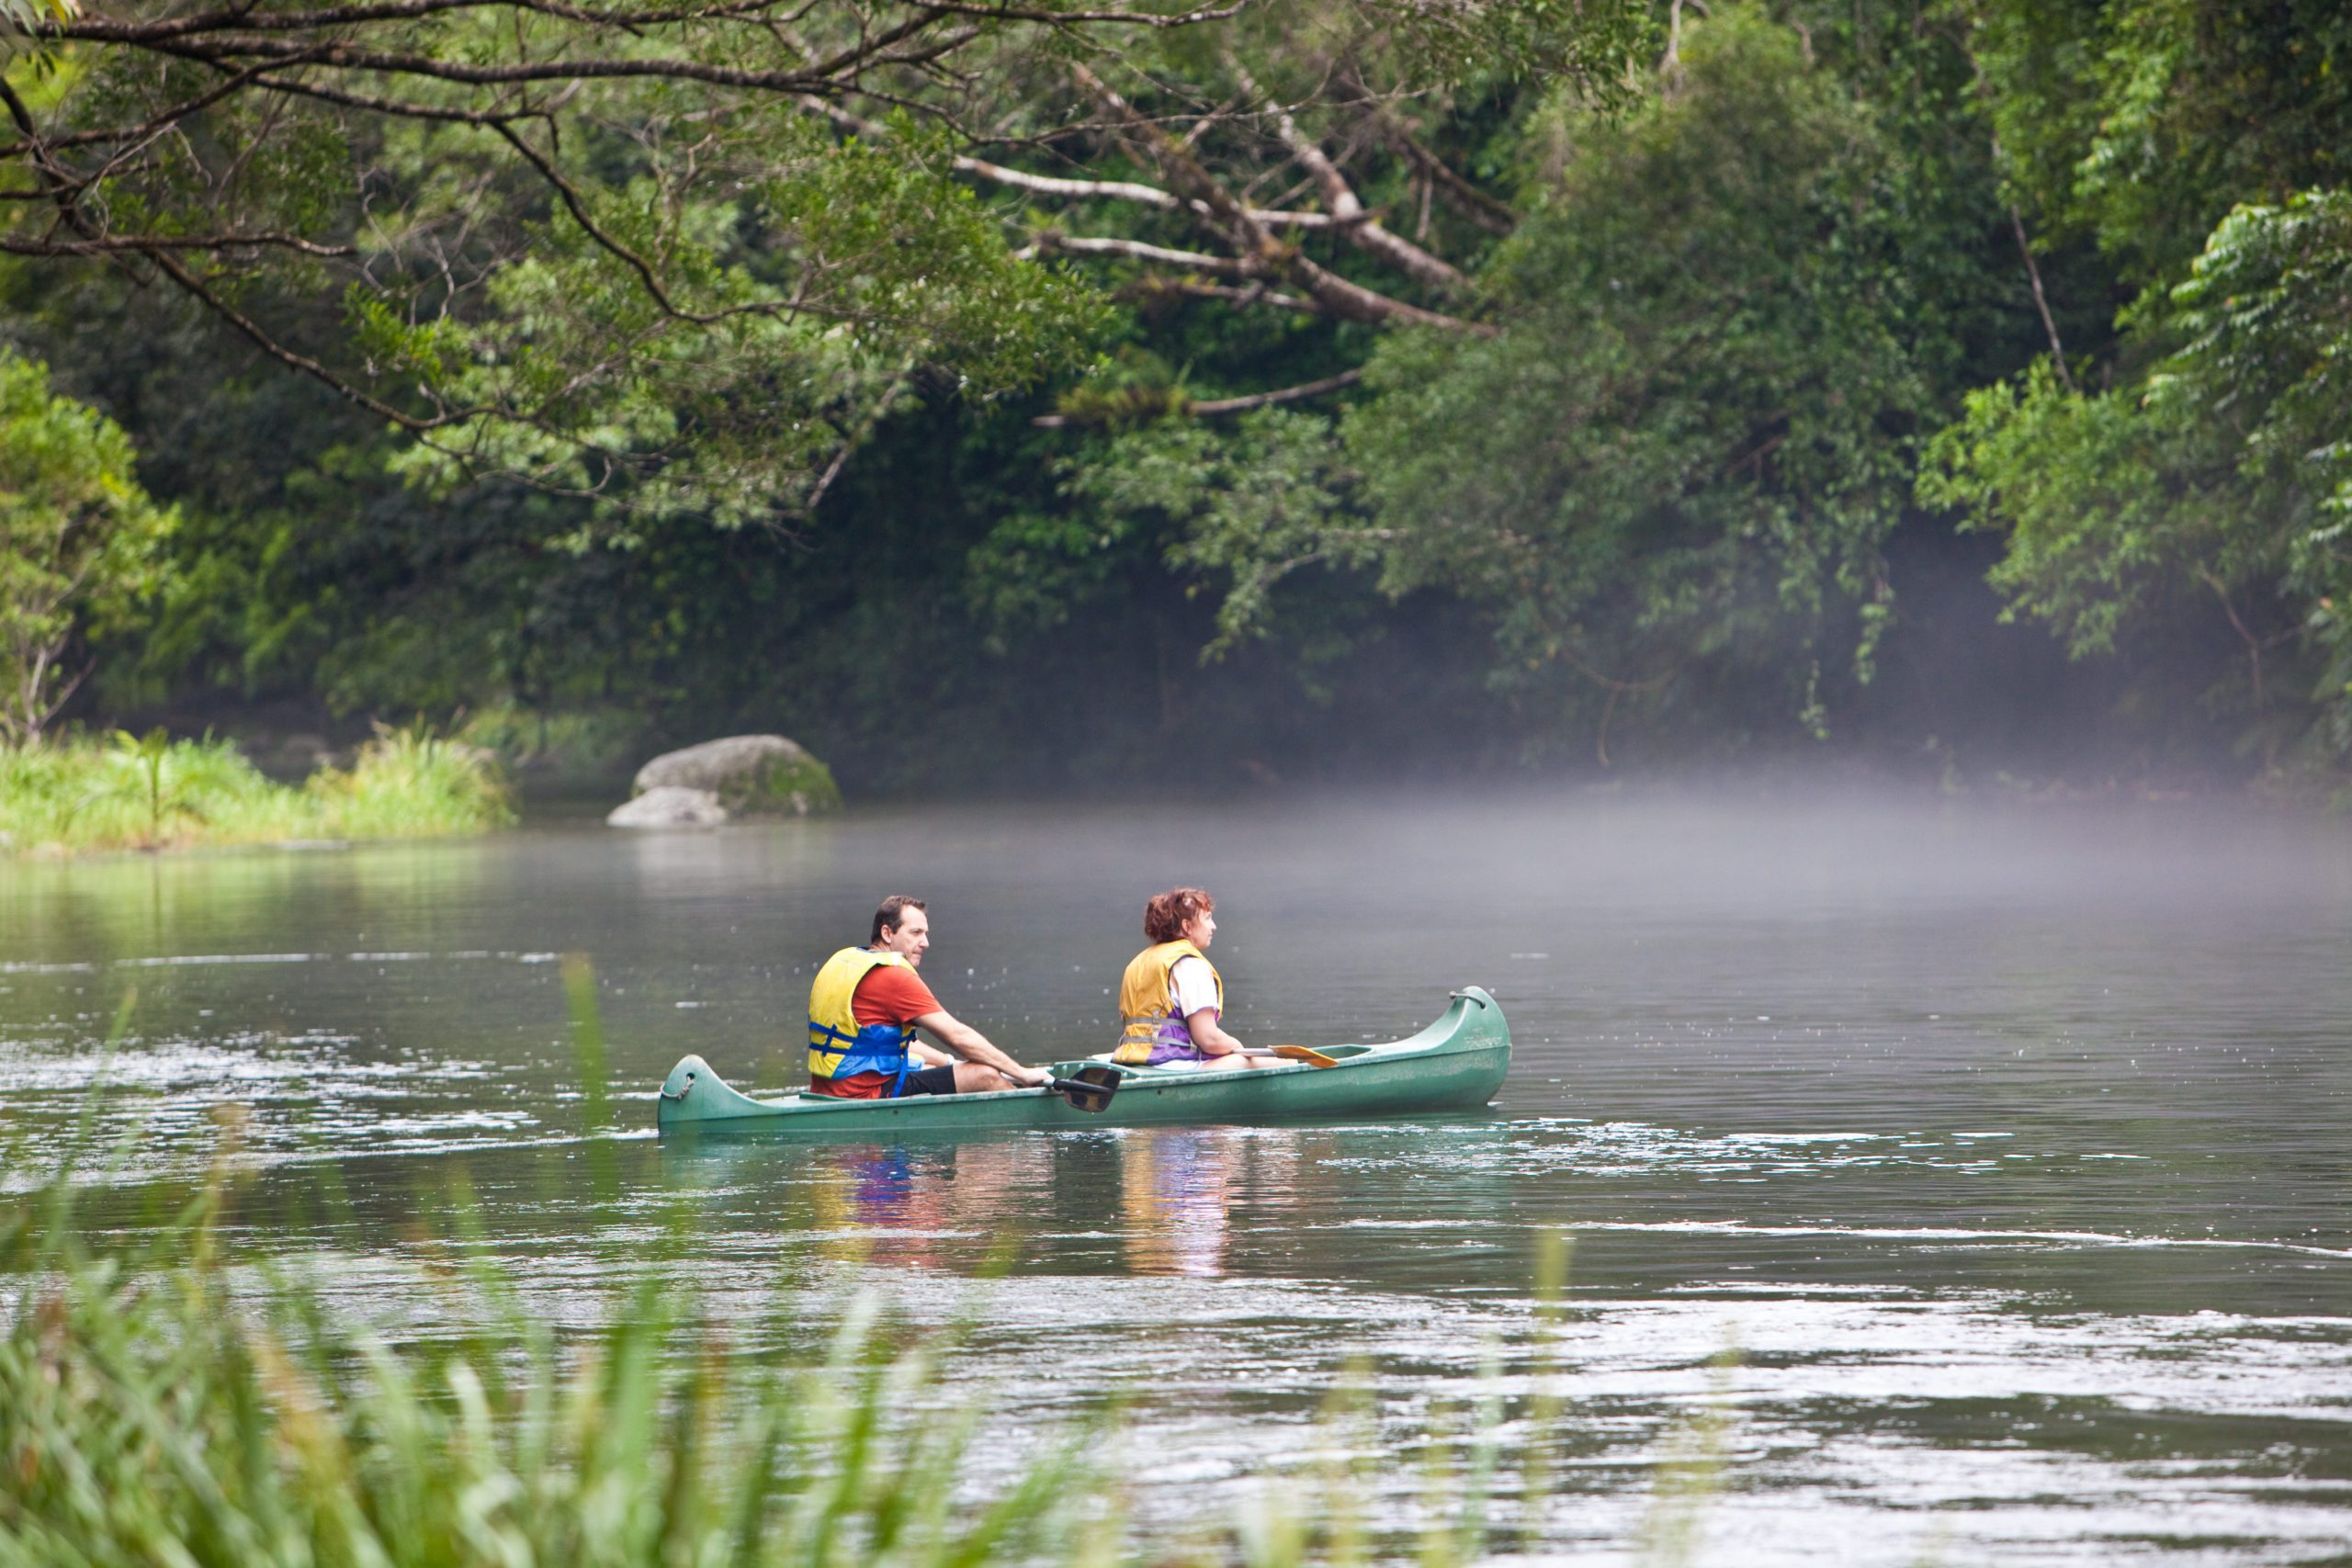 canoeing on safari through the misty Daintree Forest from Silky Oaks